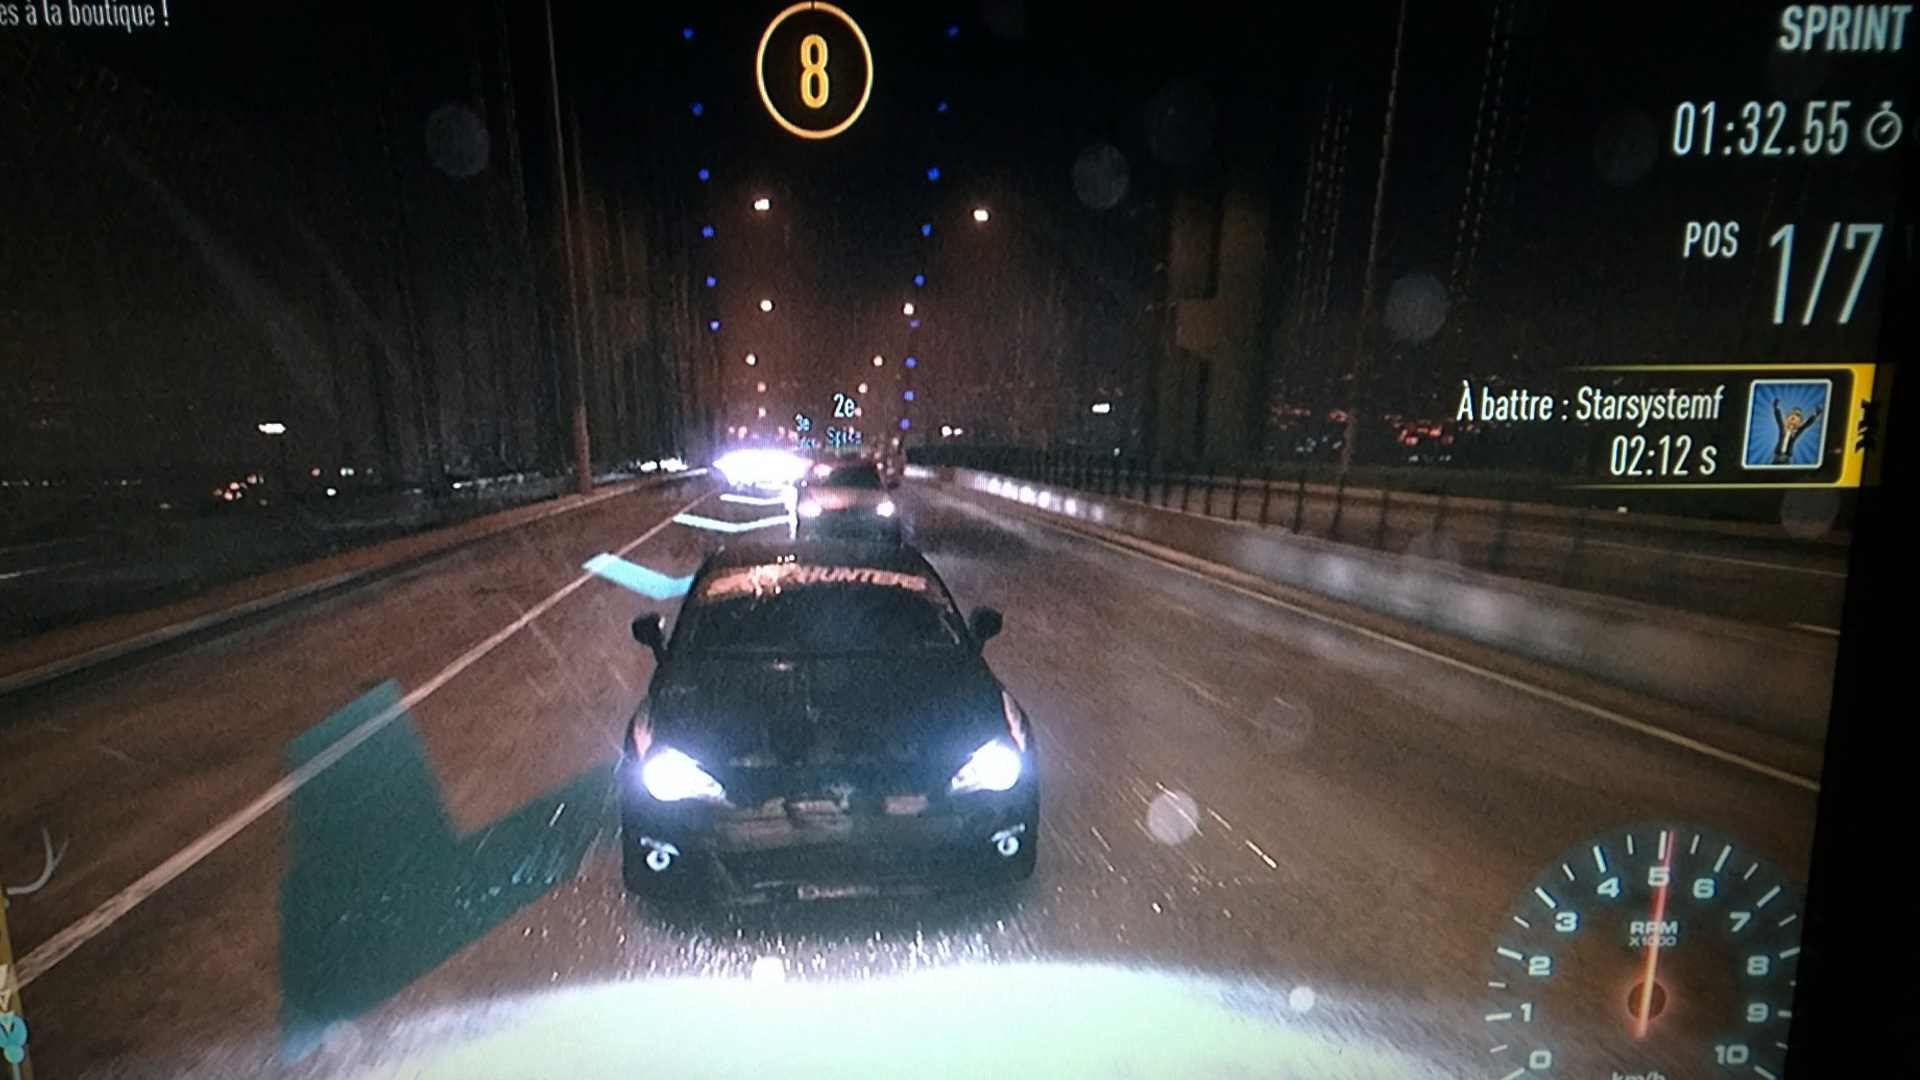 Need for Speed - screen photo - challenge